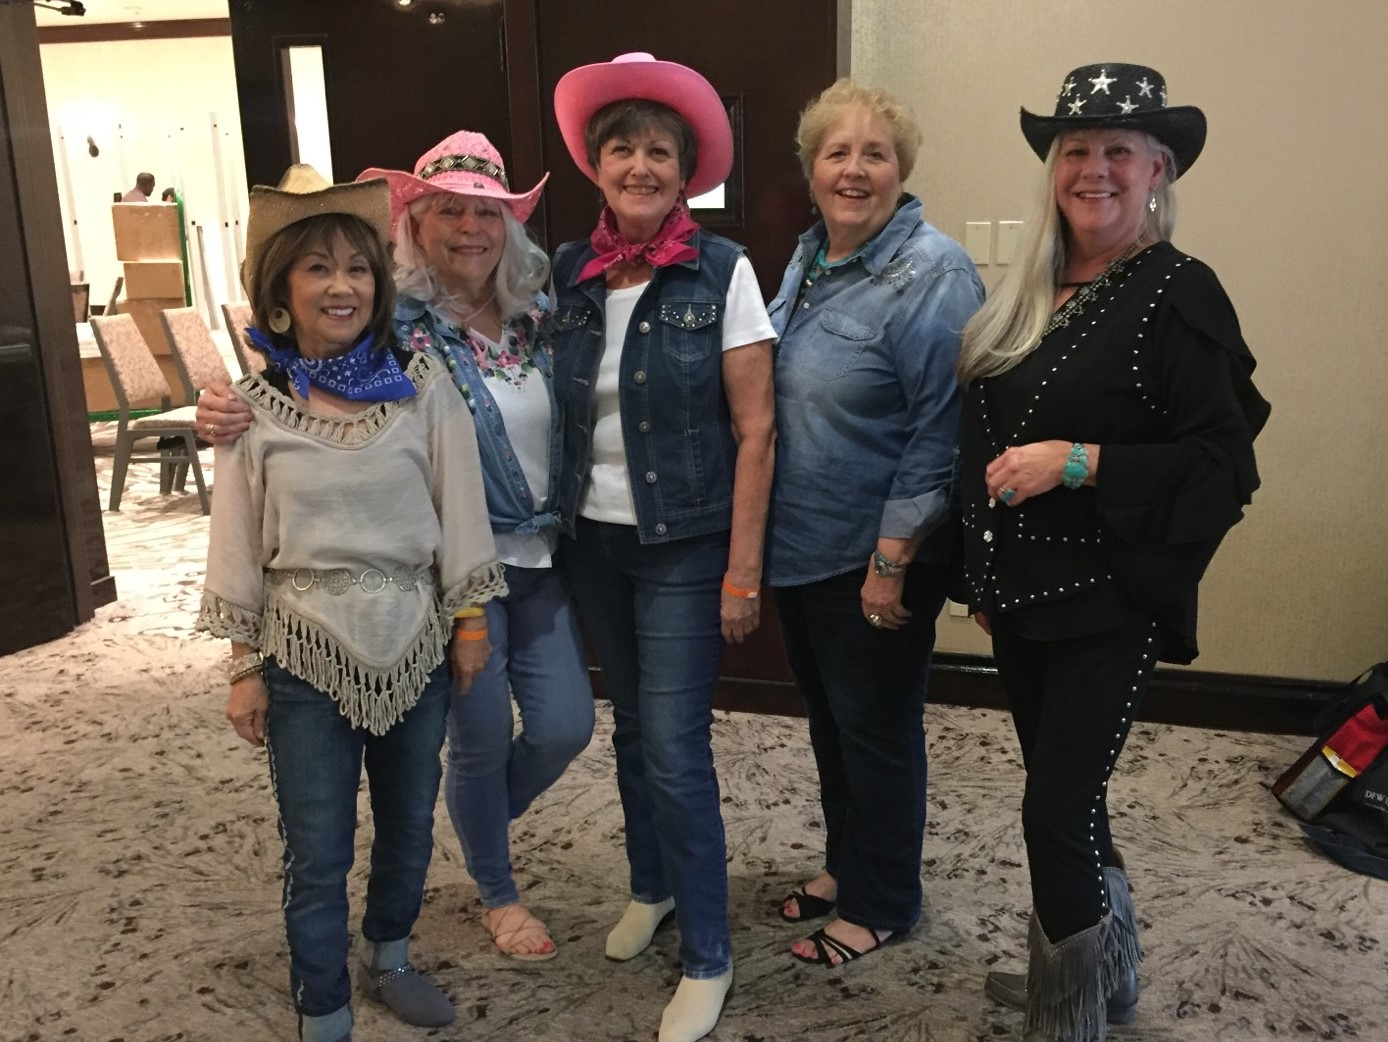 H.O.T. Heart of Texas Western night dinner & show